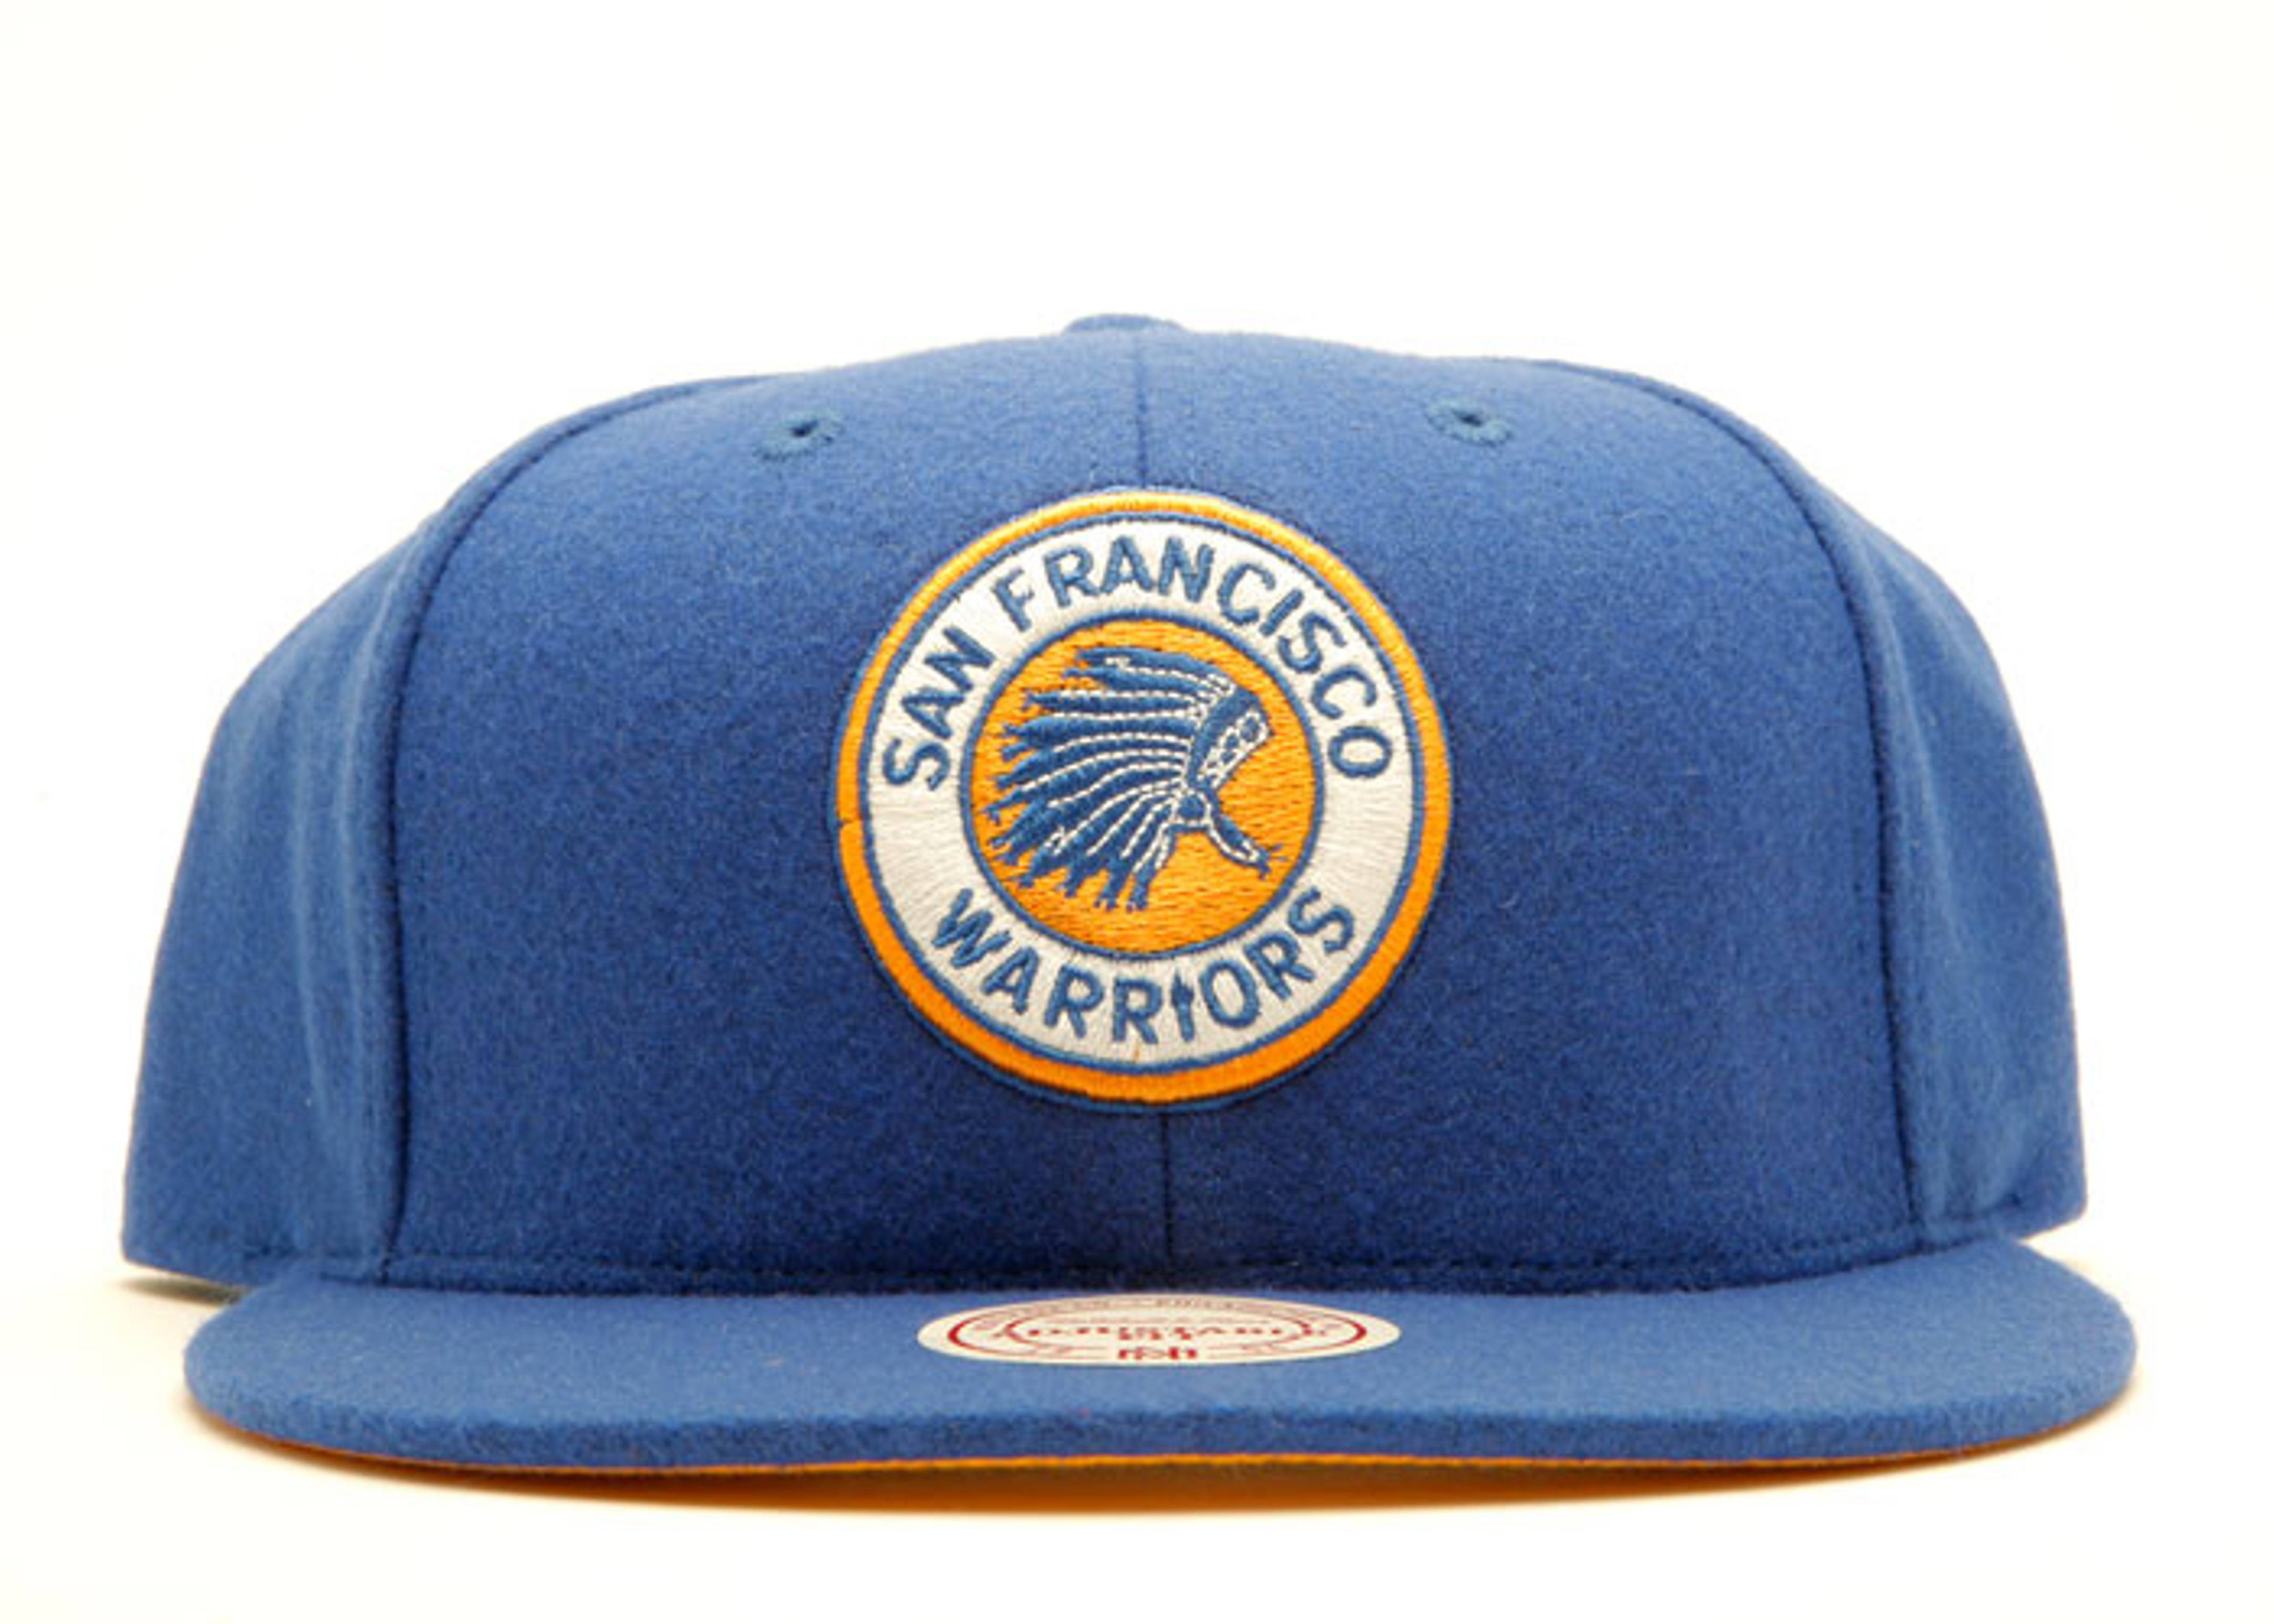 65aee18dbc7 San Francisco Warriors Snap-back